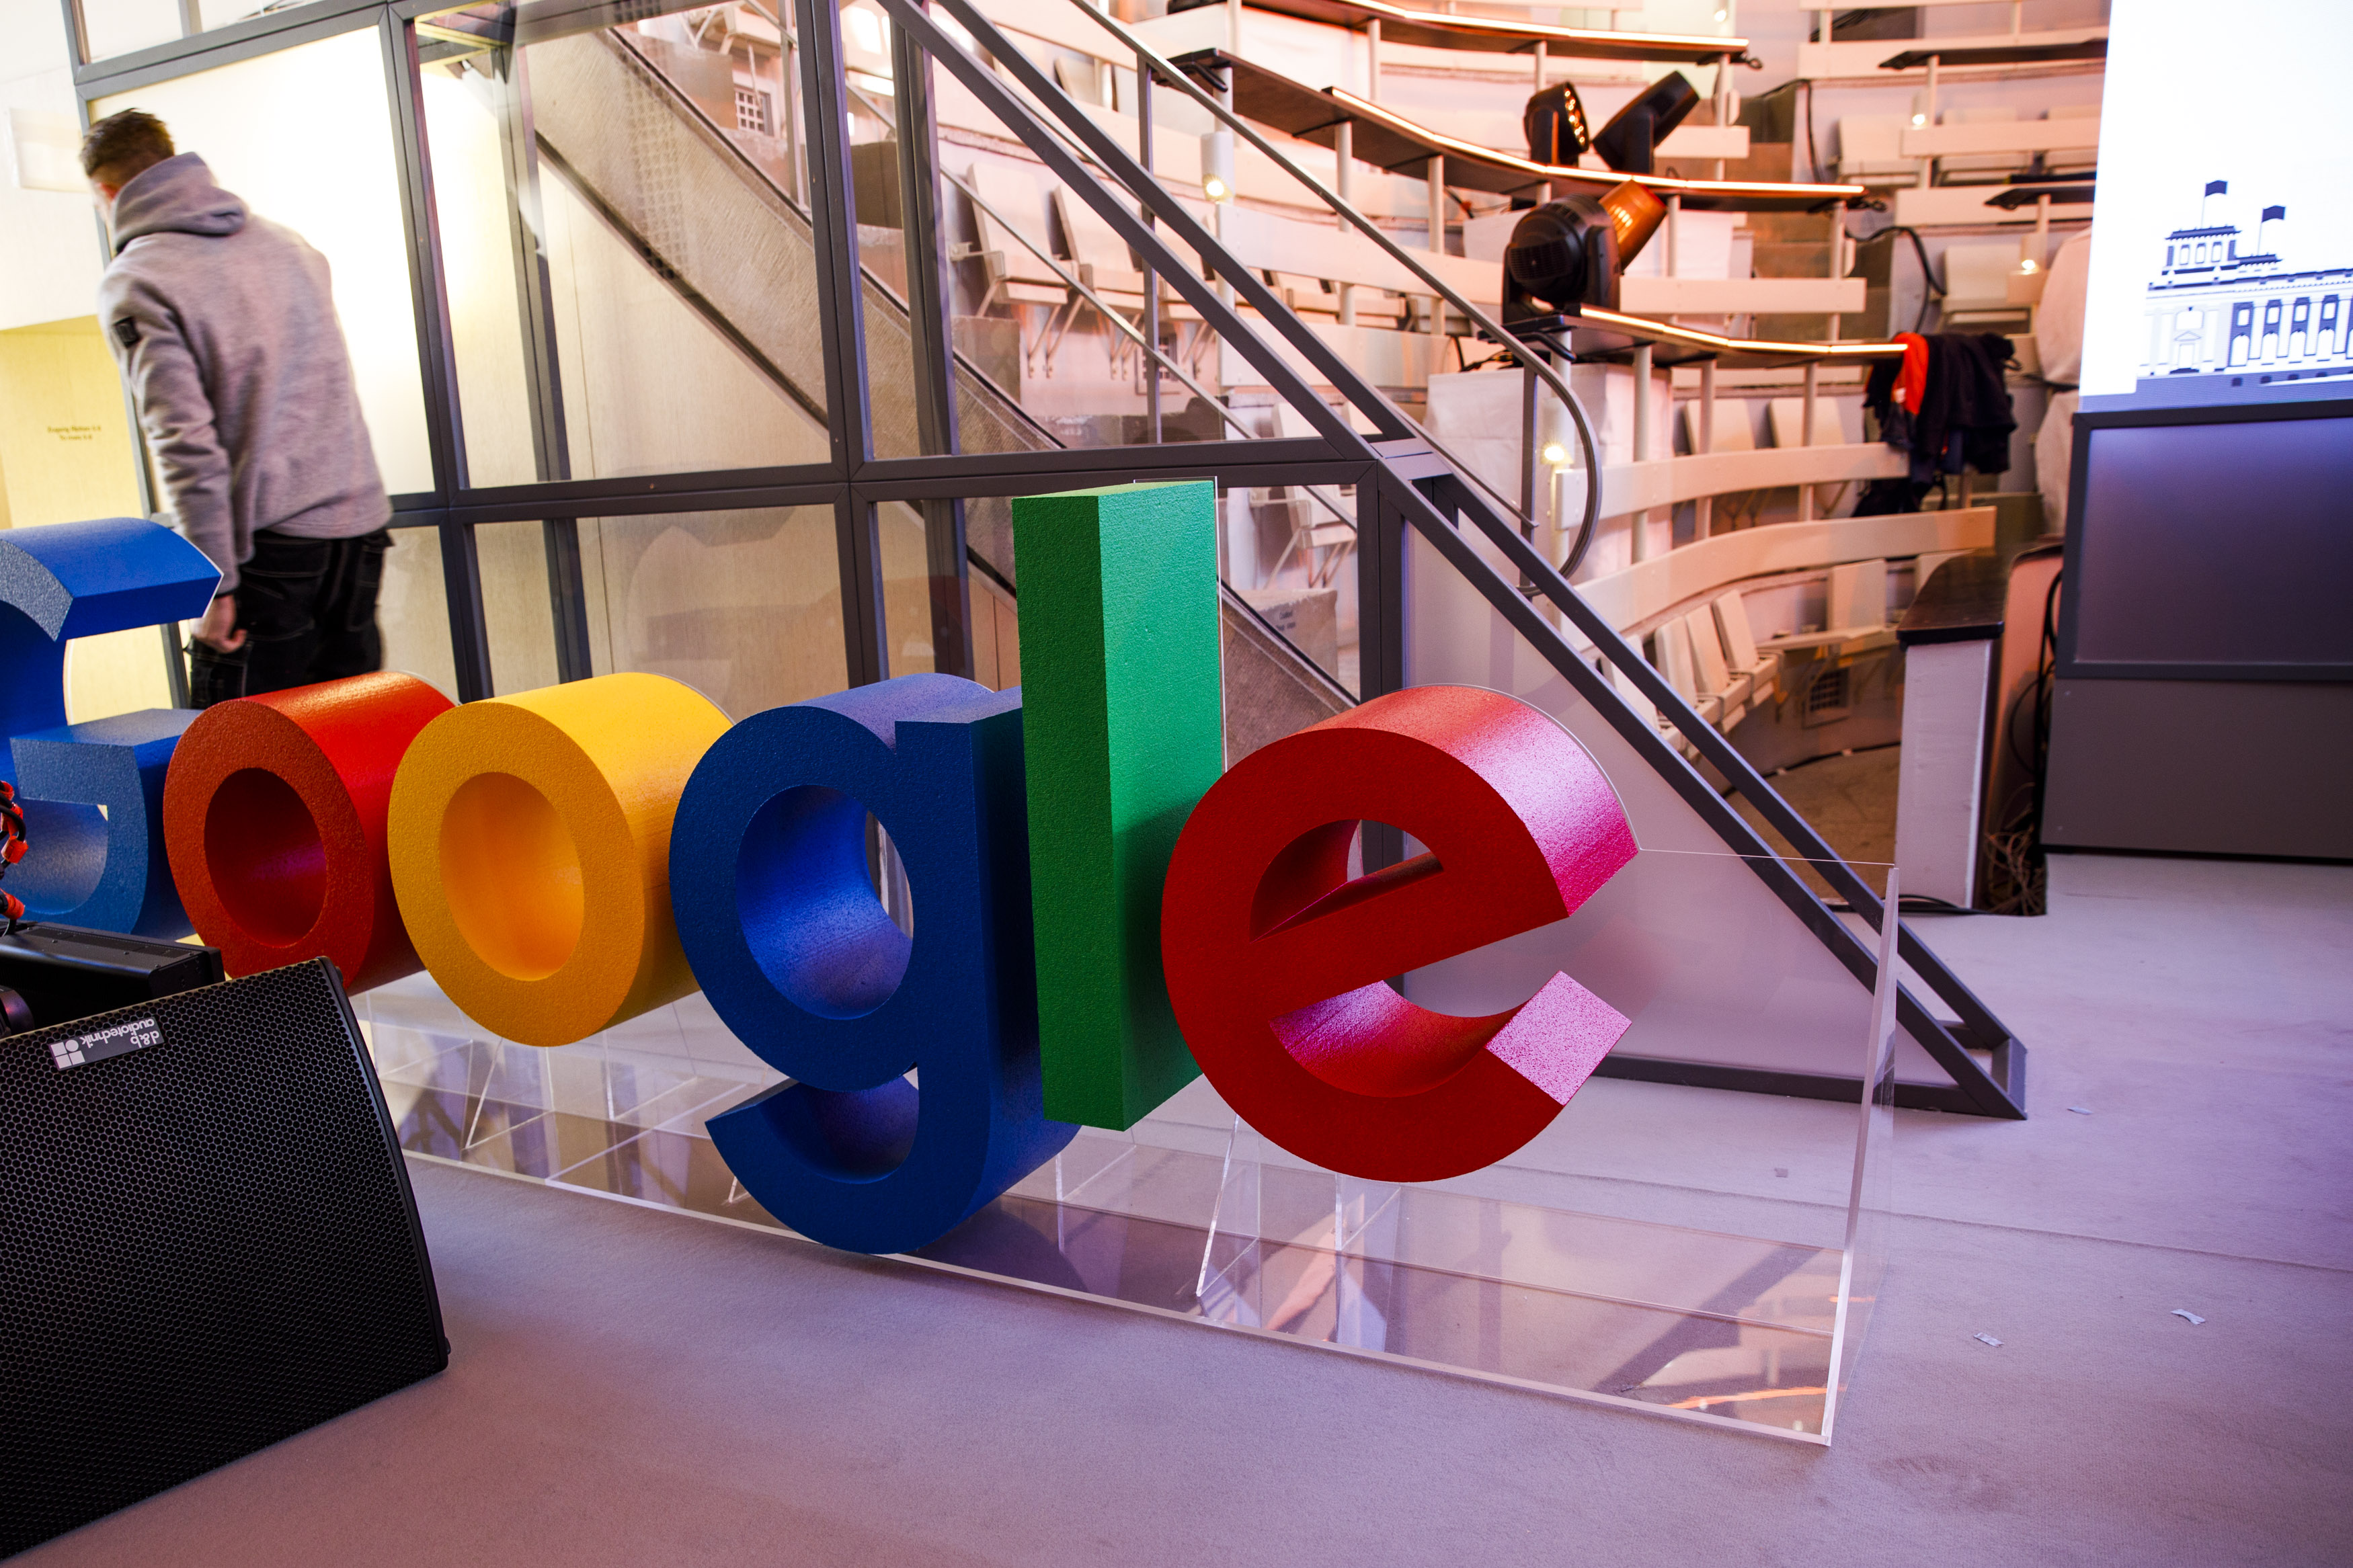 Workers push a Google sign from the stage before the festive opening of the Berlin representation of Google Germany on January 22, 2019 in Berlin, Germany. (Carsten Koall/Getty Images)